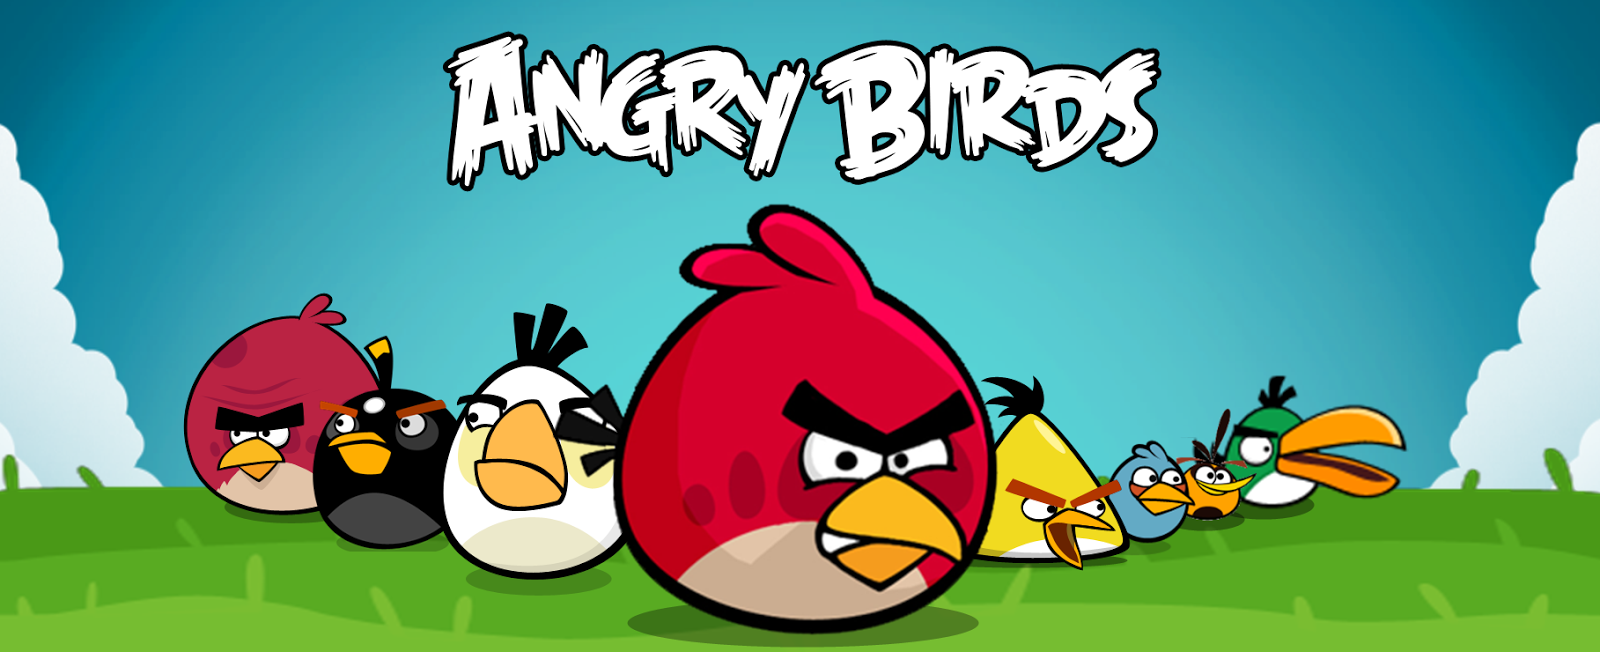 Angry Birds game splsh screen_1